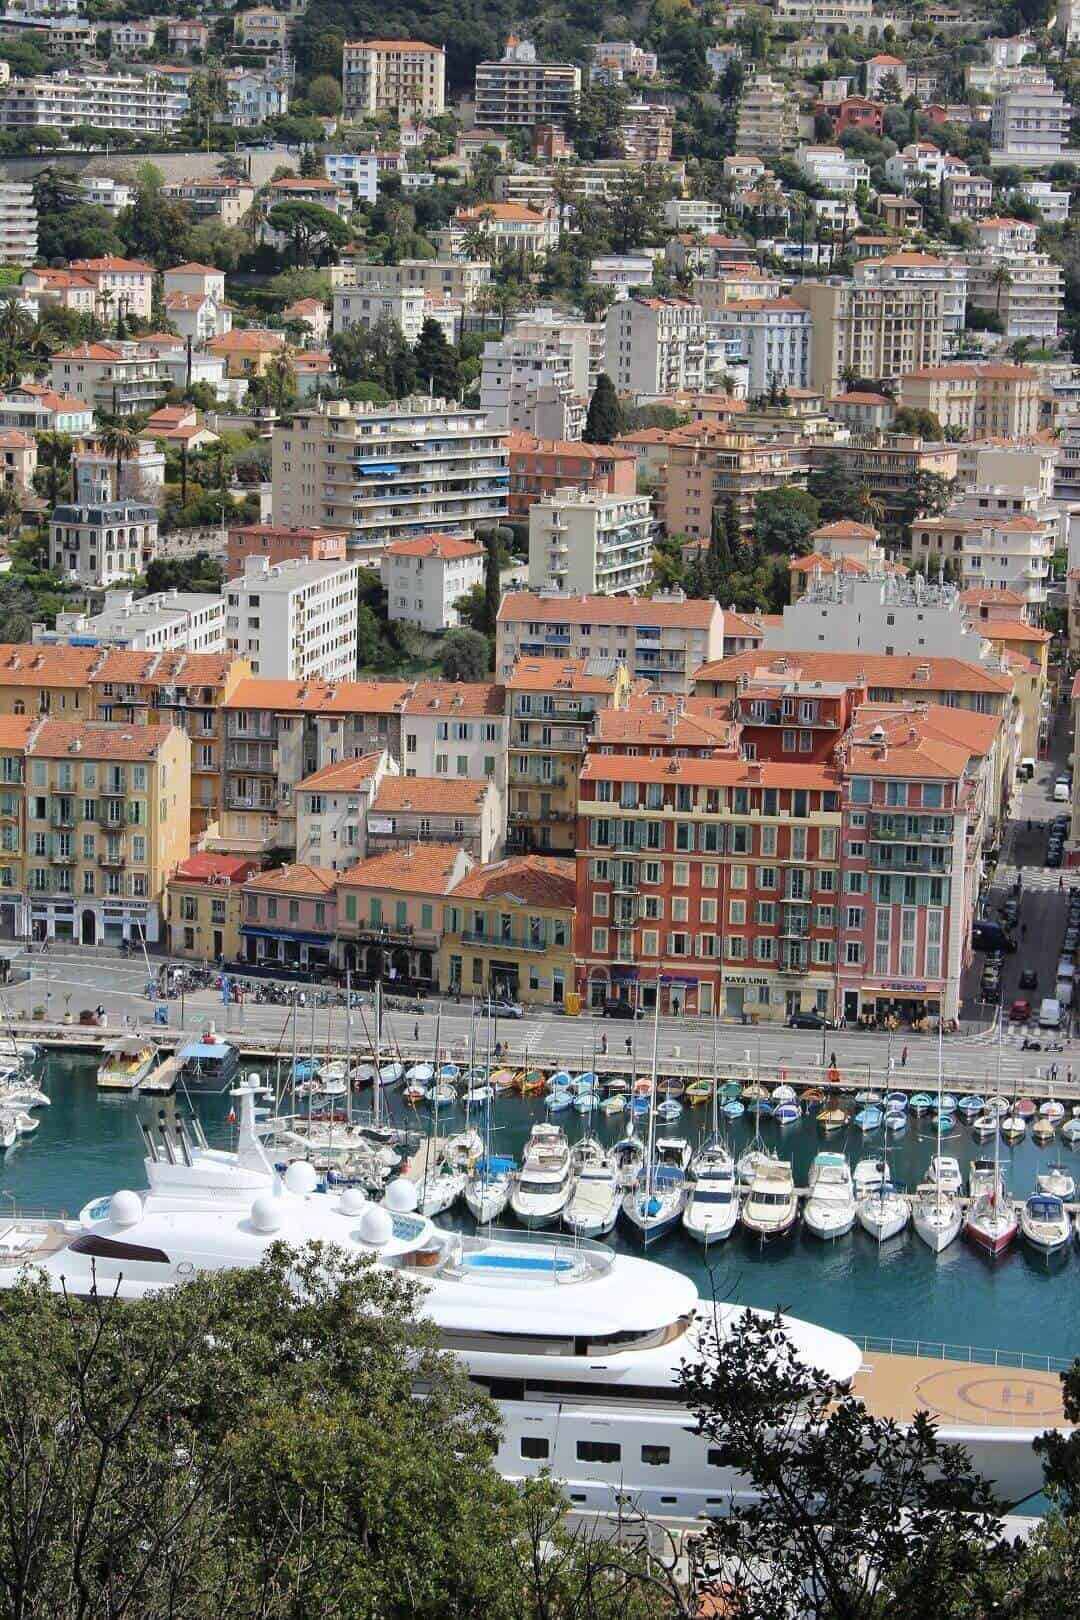 The super yacht in the foreground with small boats in the harbour and buildings rising behind them all.